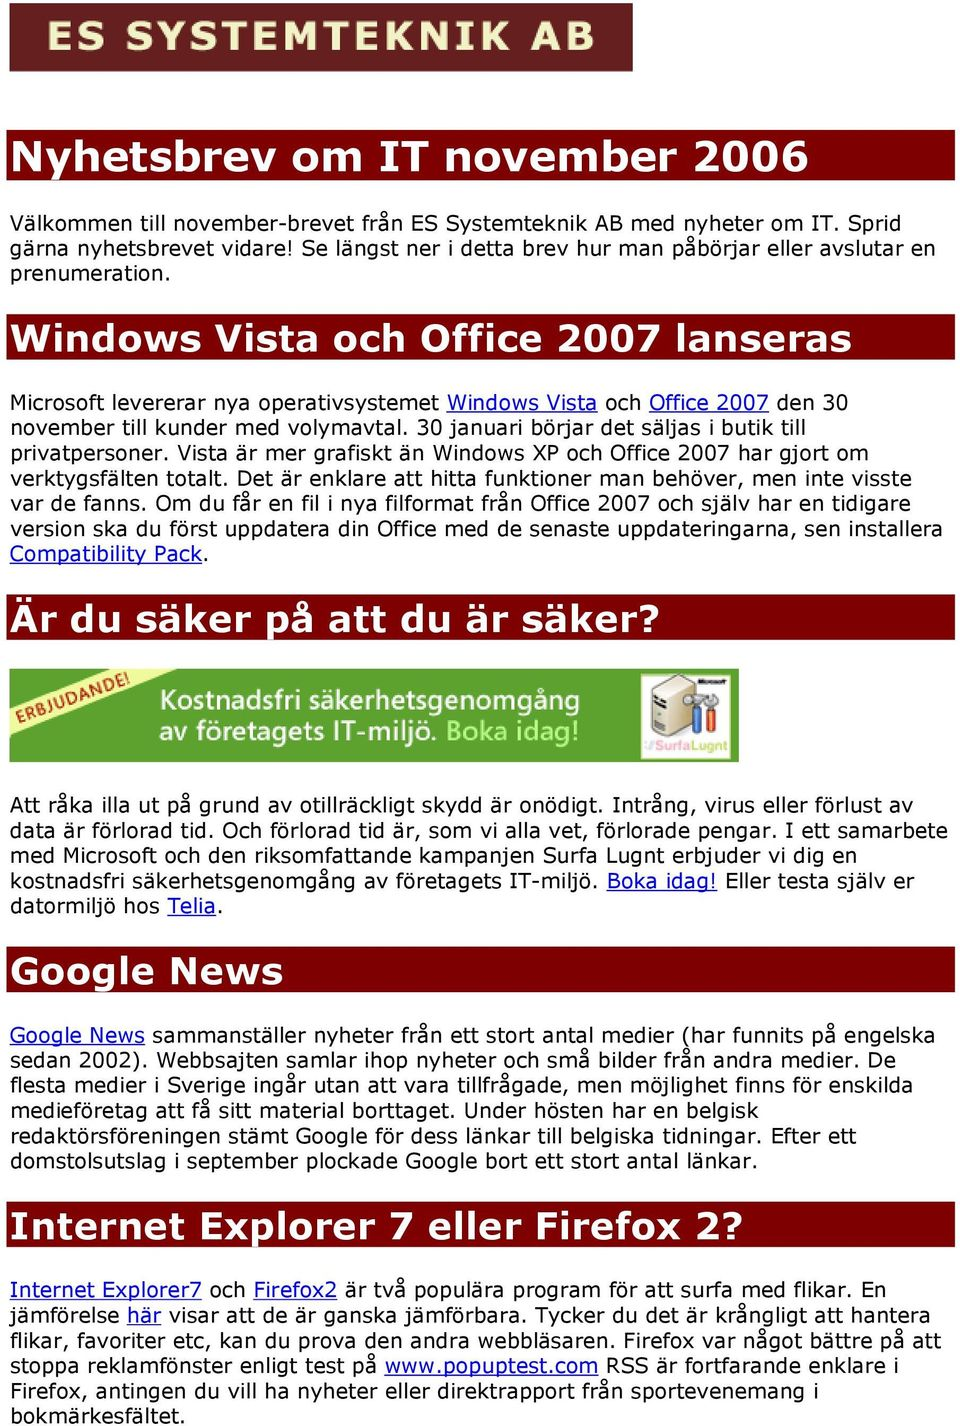 Windows Vista och Office 2007 lanseras Microsoft levererar nya operativsystemet Windows Vista och Office 2007 den 30 november till kunder med volymavtal.